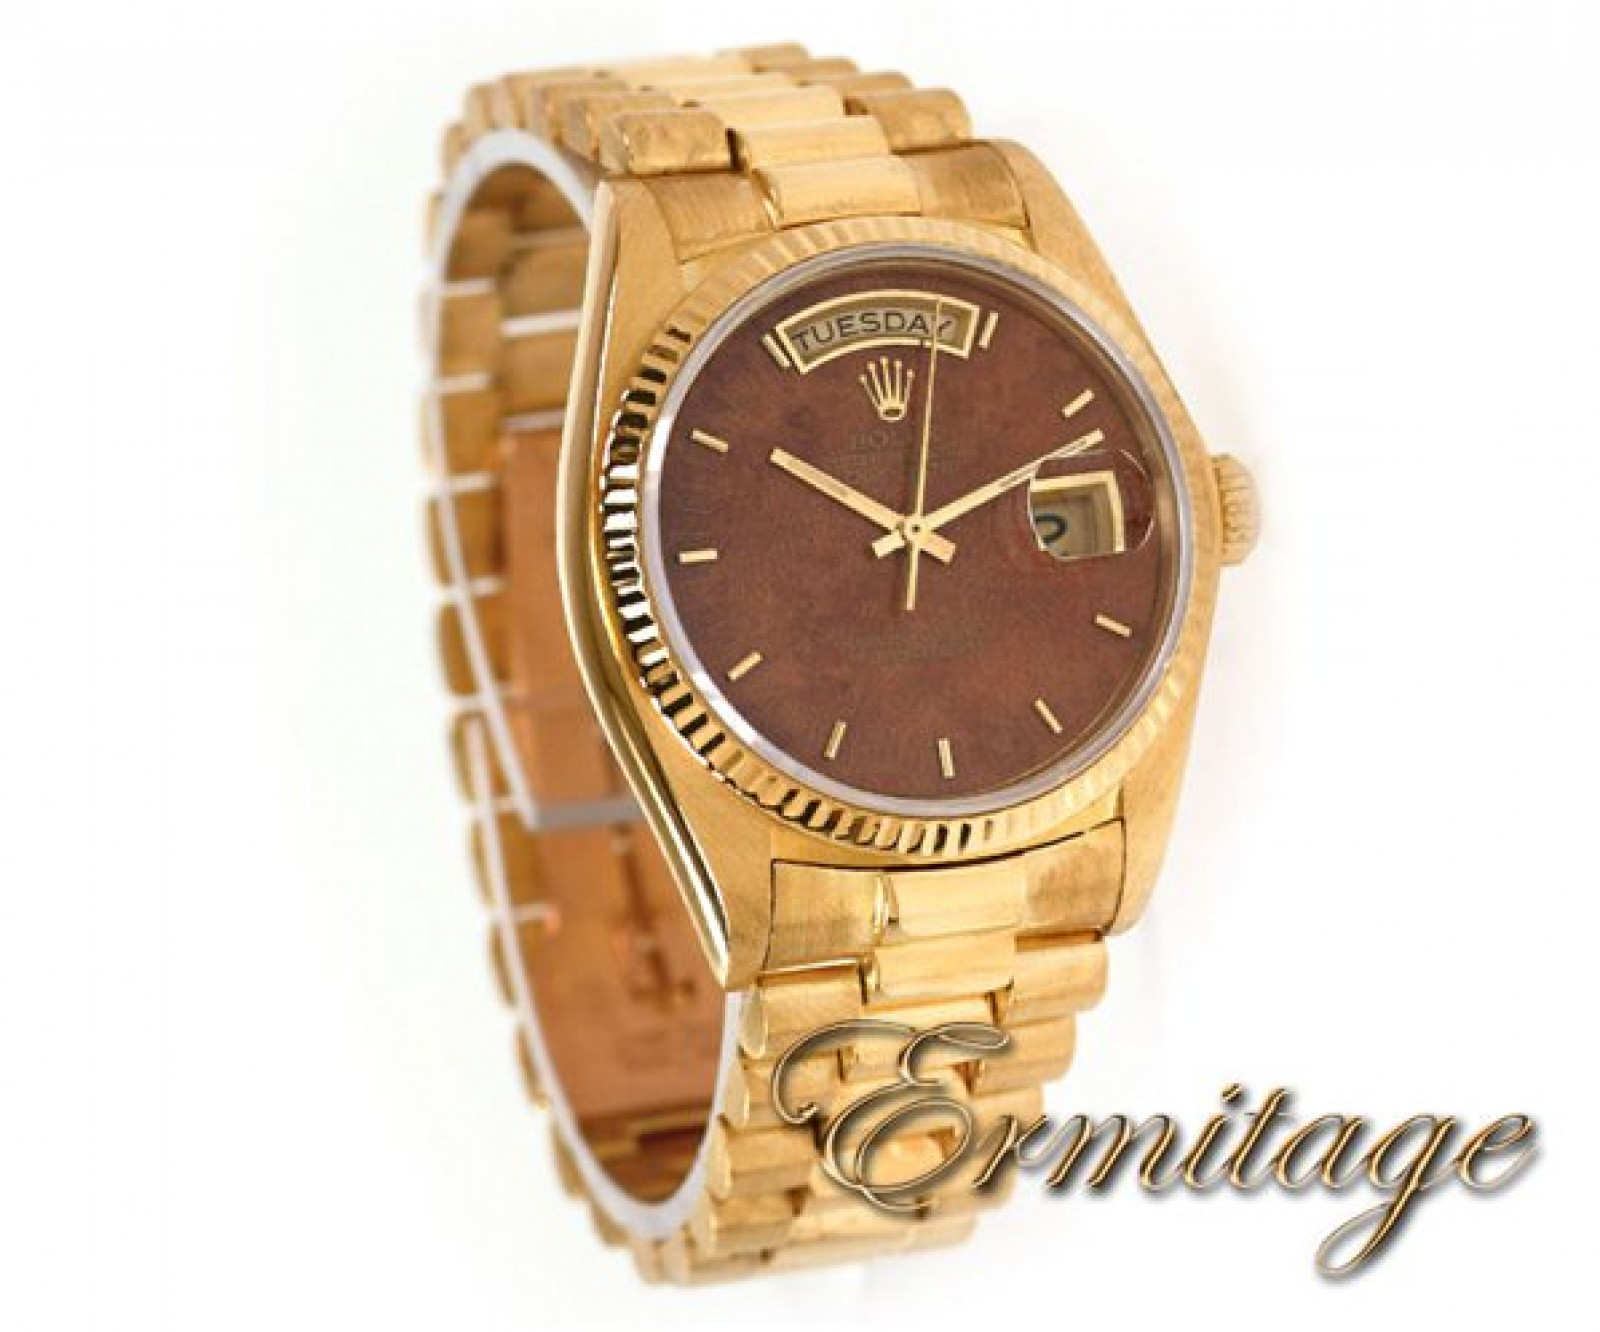 Rolex Day-Date 18038 Gold Brown